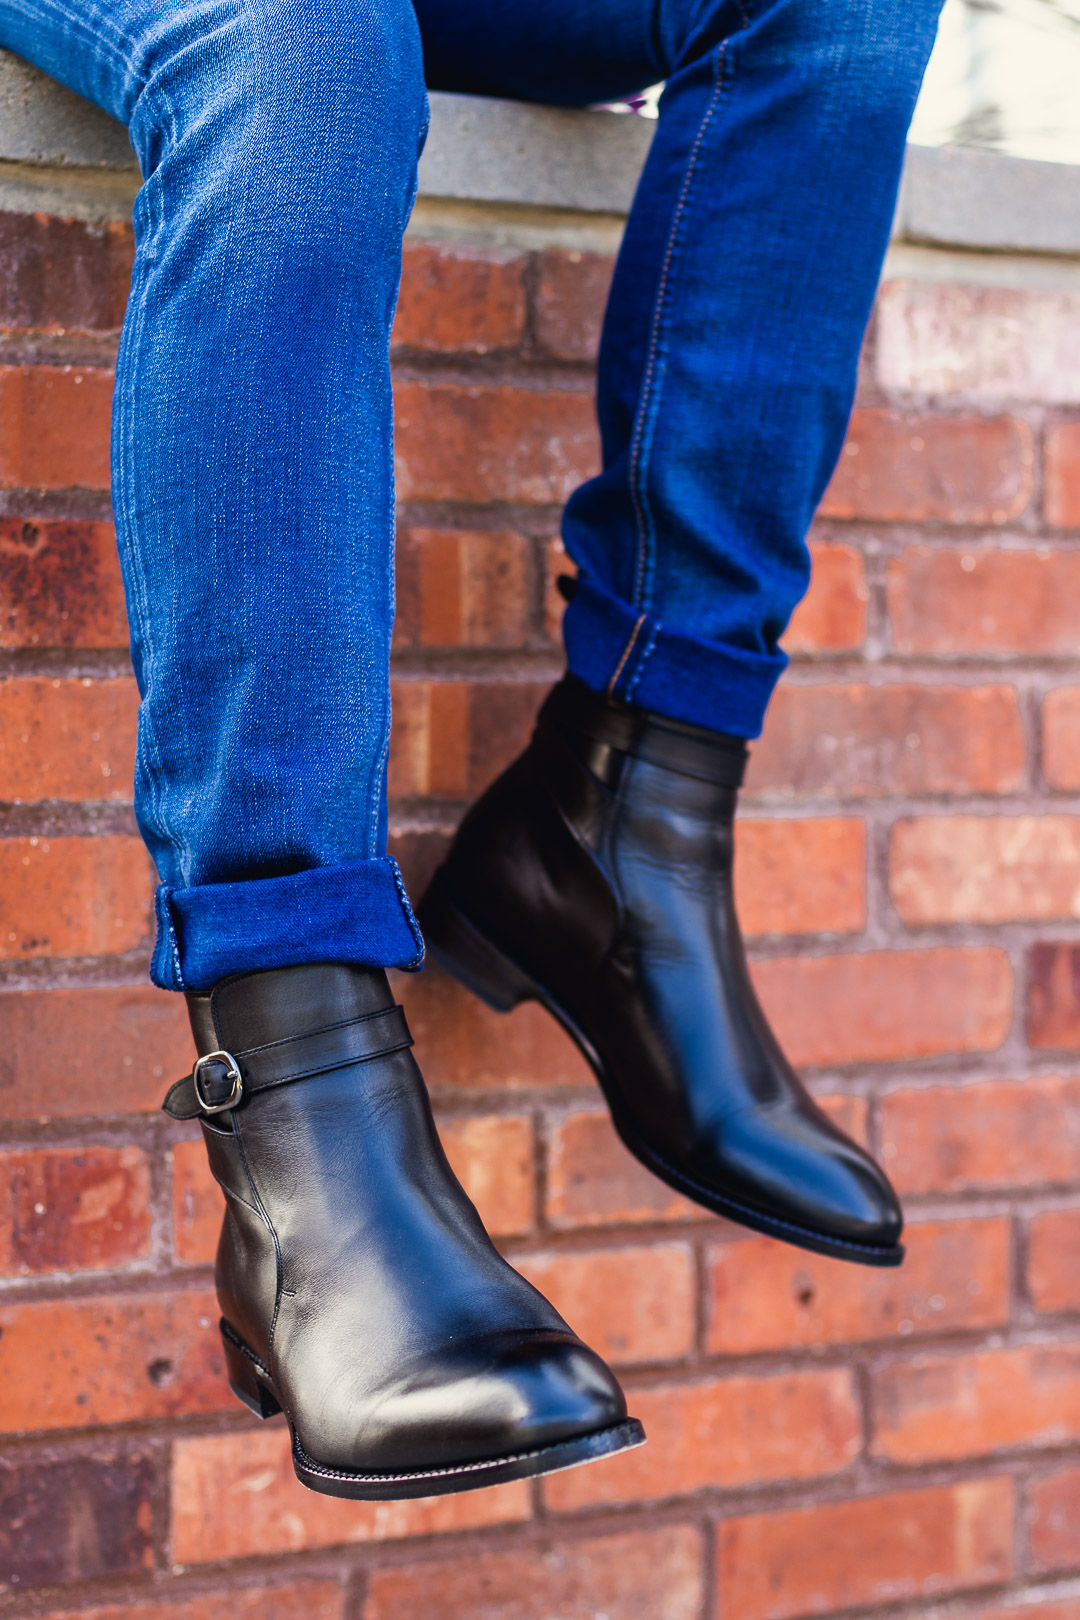 Cuff That Denim! - Show off the boots with your casual looks!